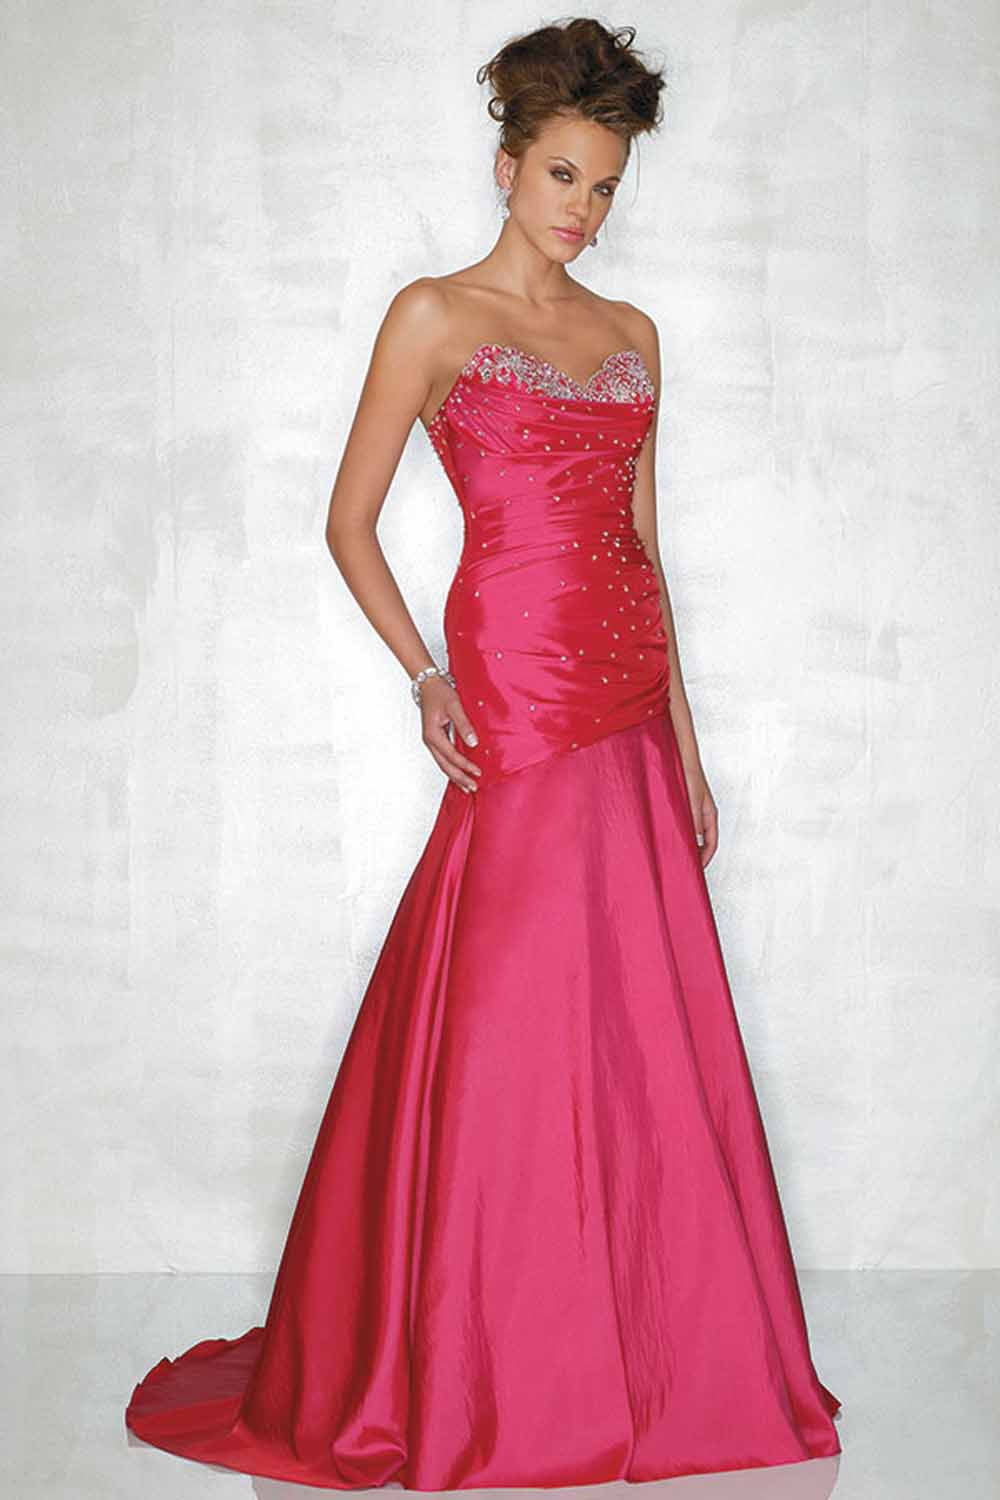 Prom Hairstyles: Design Your Own Prom Dress Ideas